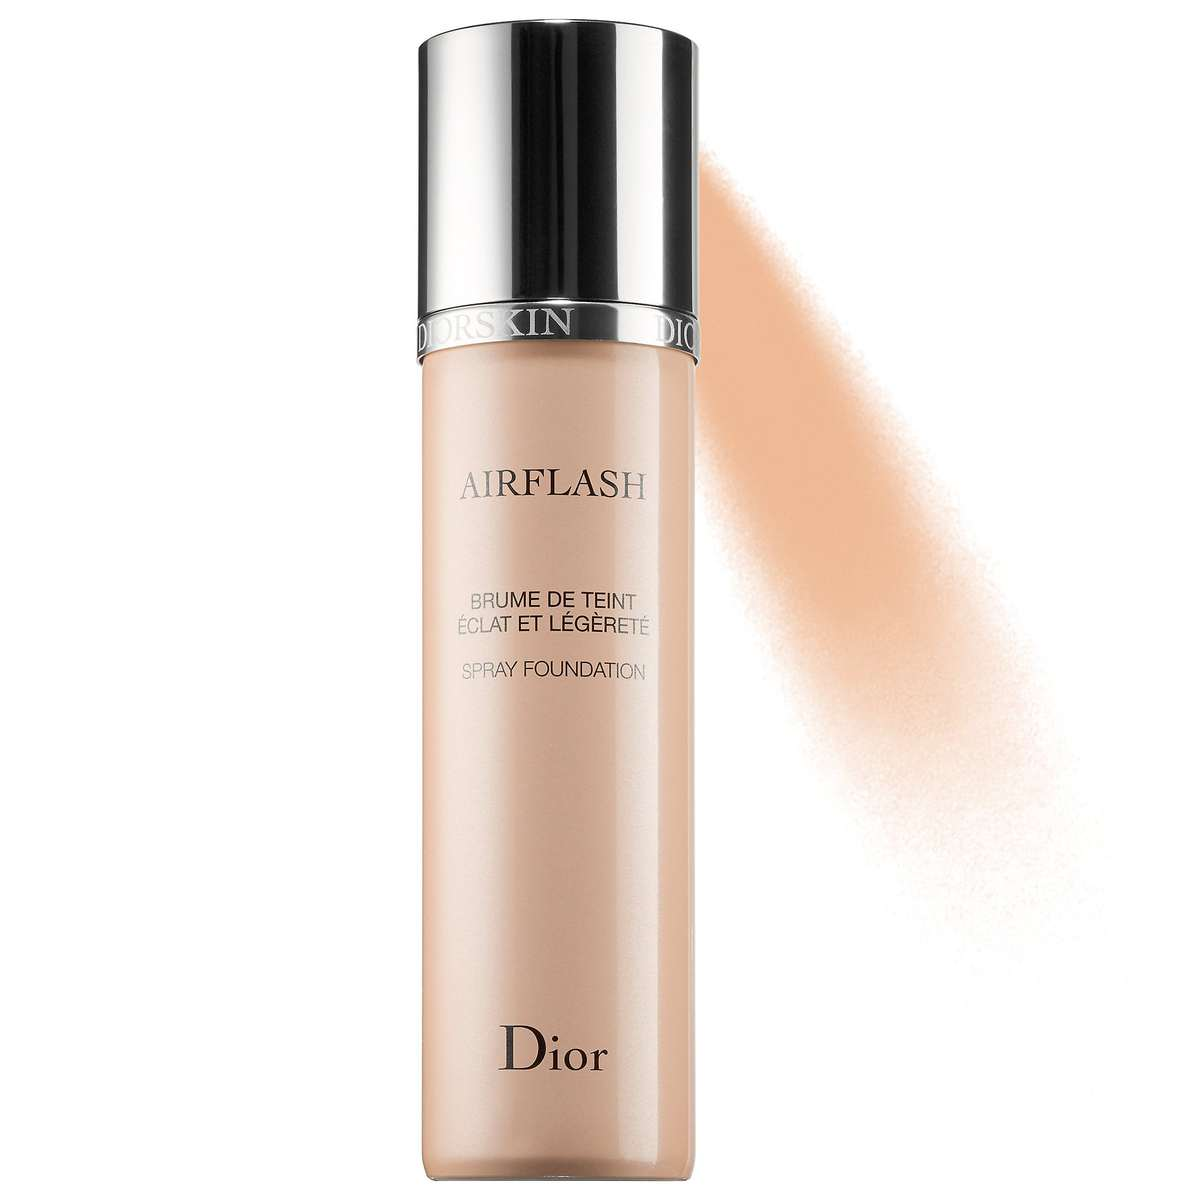 dior airflash spray foundation